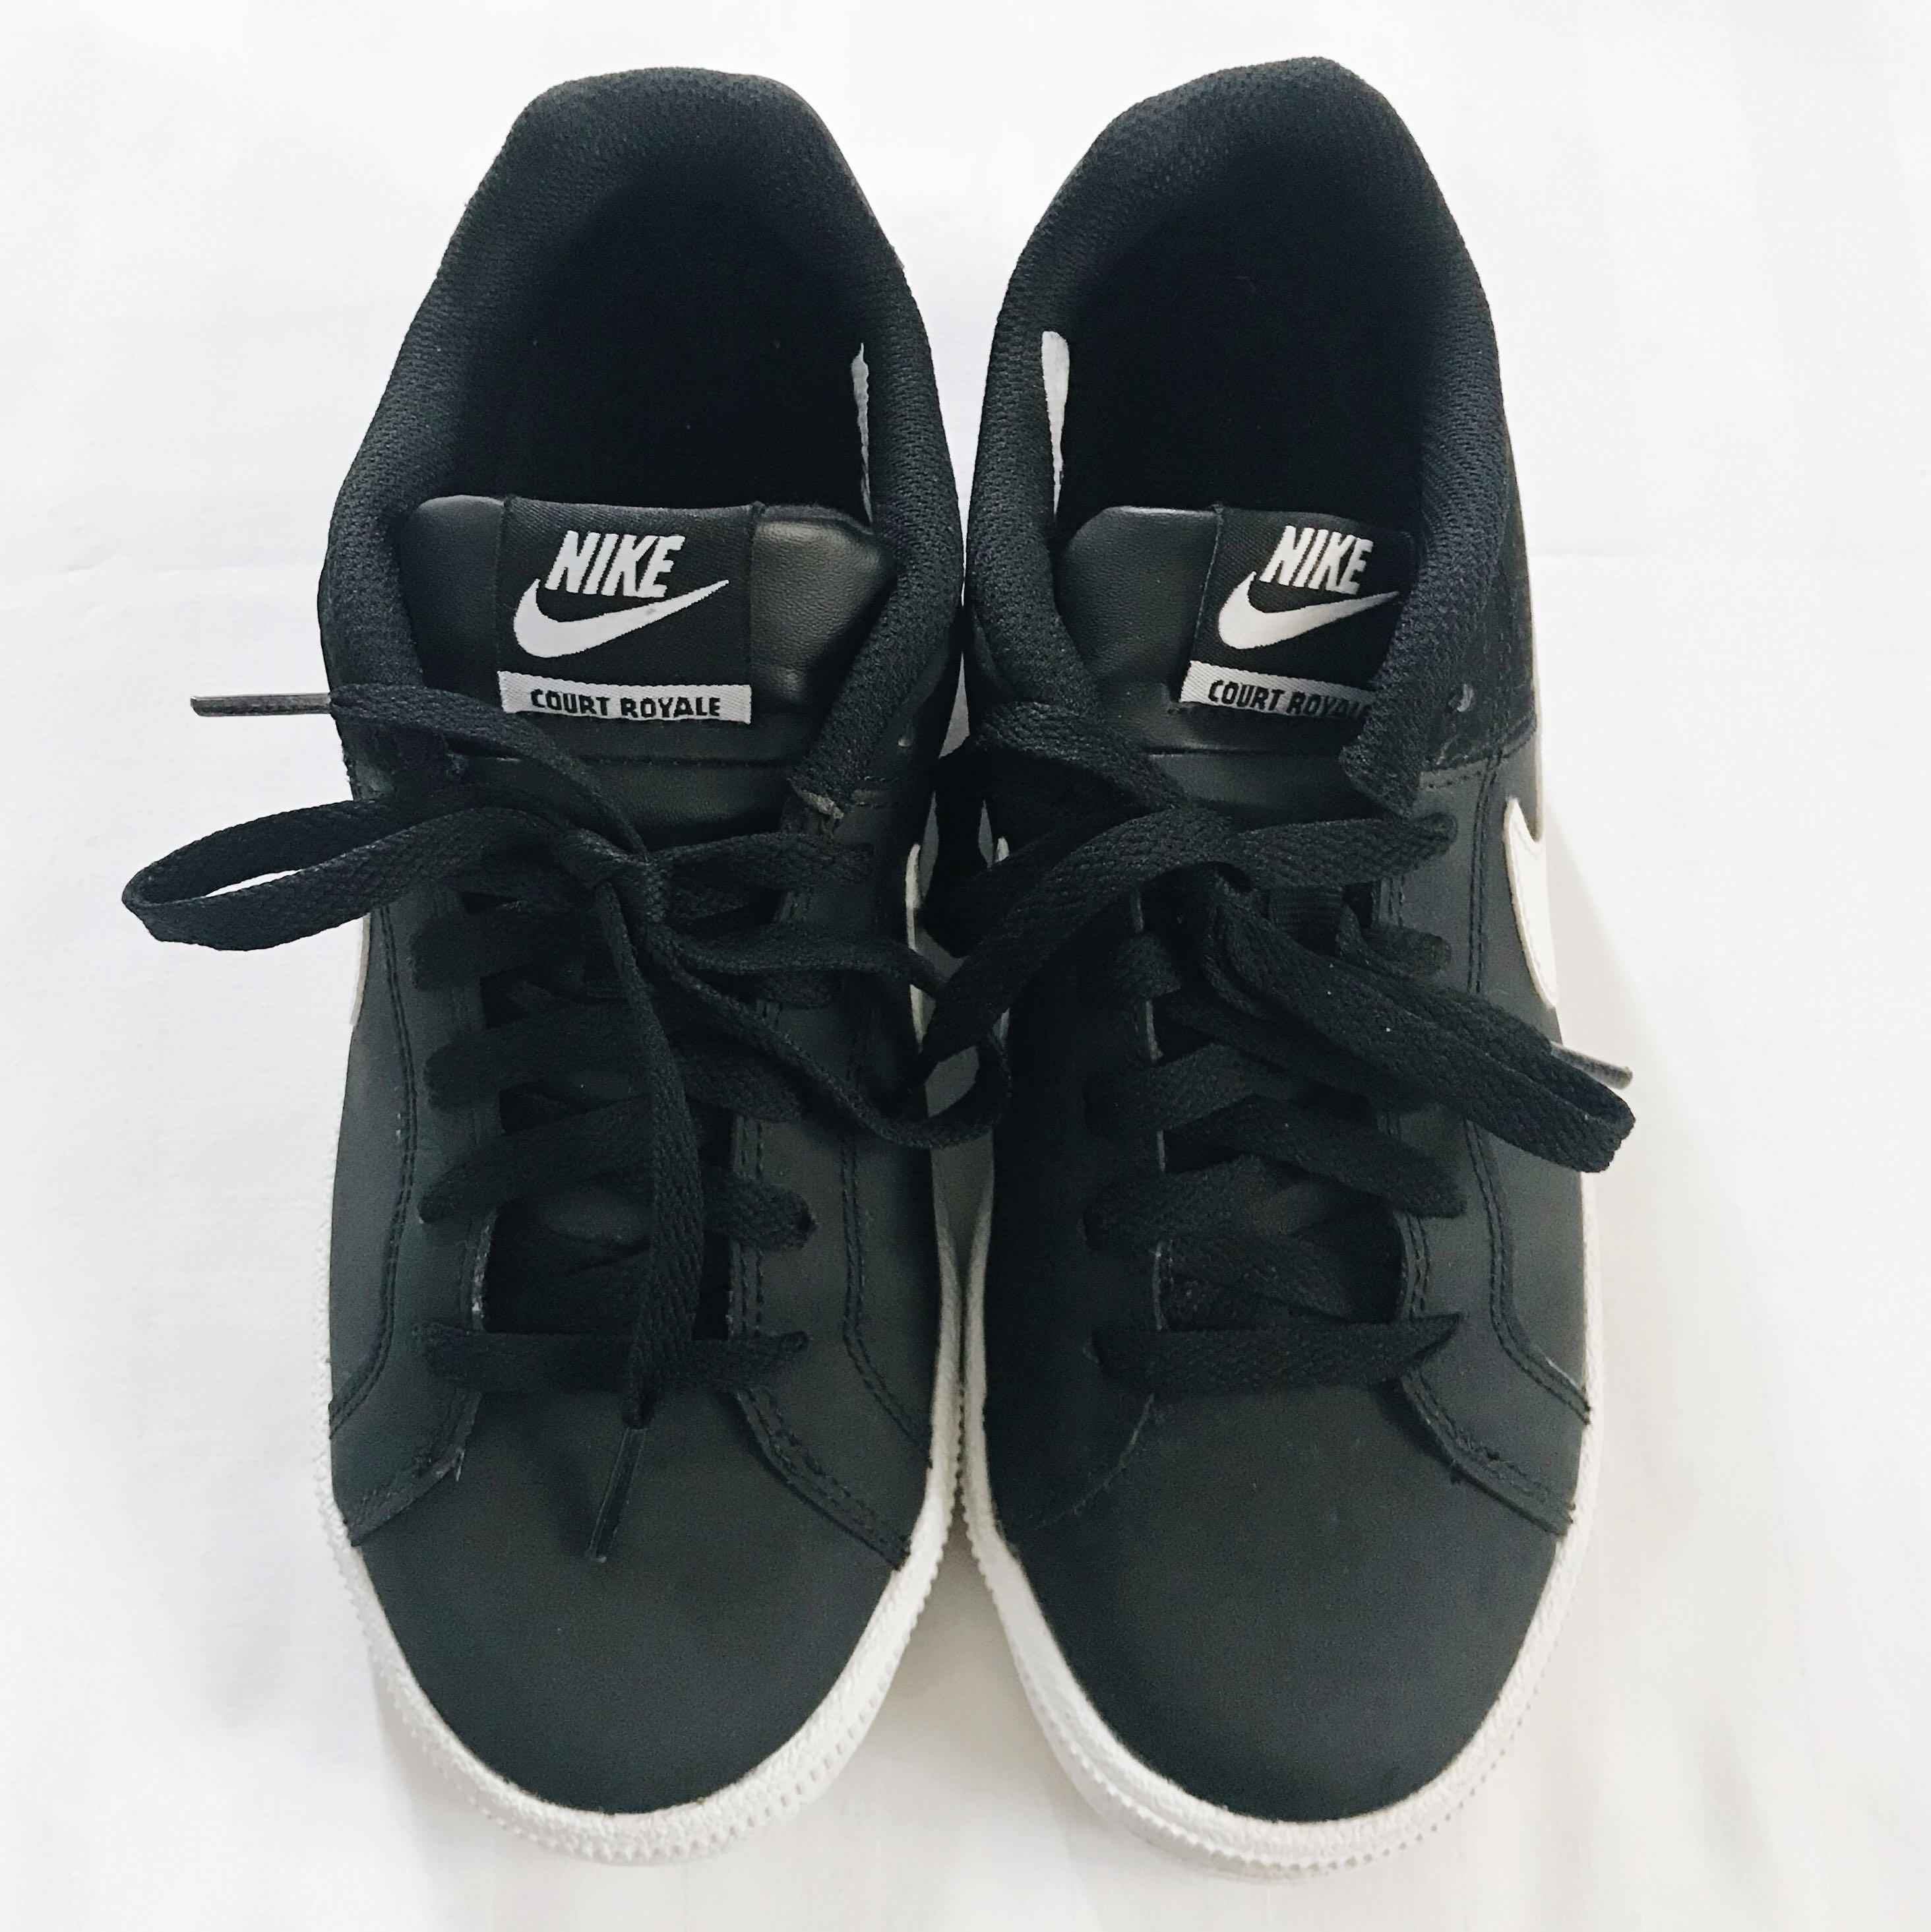 Authentic Nike Court Royale